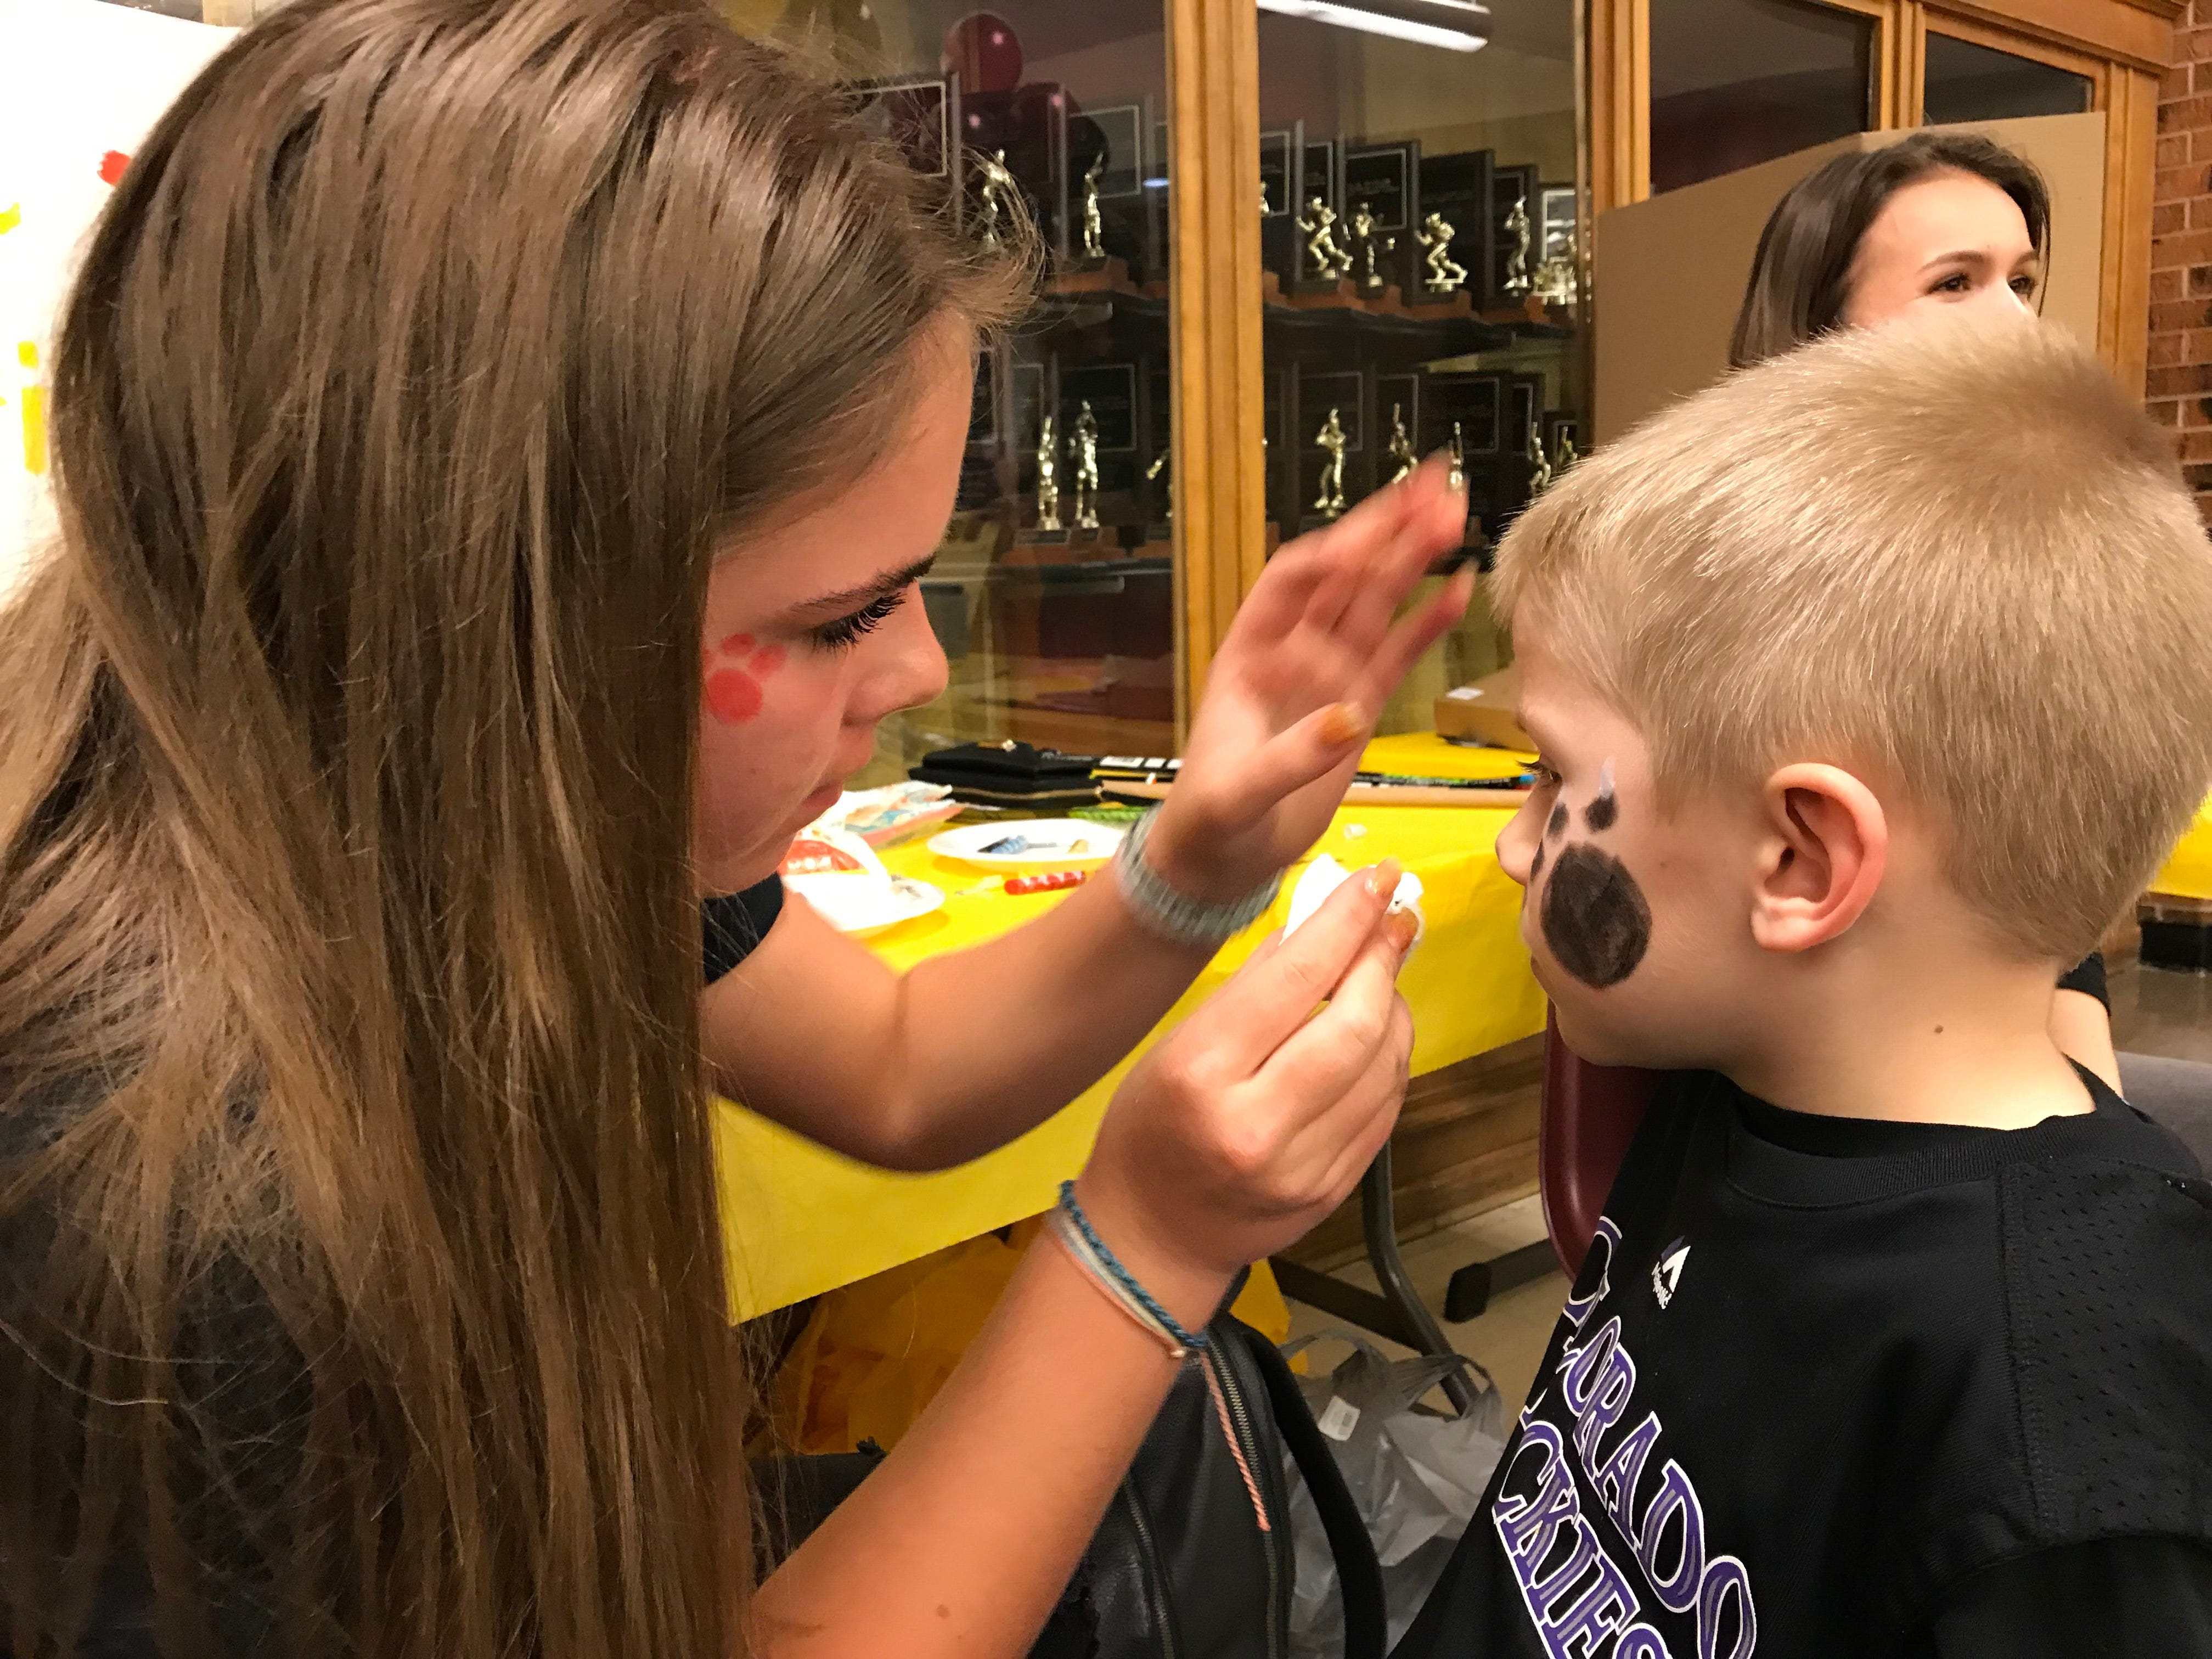 A child gets his face painted as part of the festivities supporting Carter Edgerley, a senior basketball player at Rocky Mountain High School who is battling cancer.